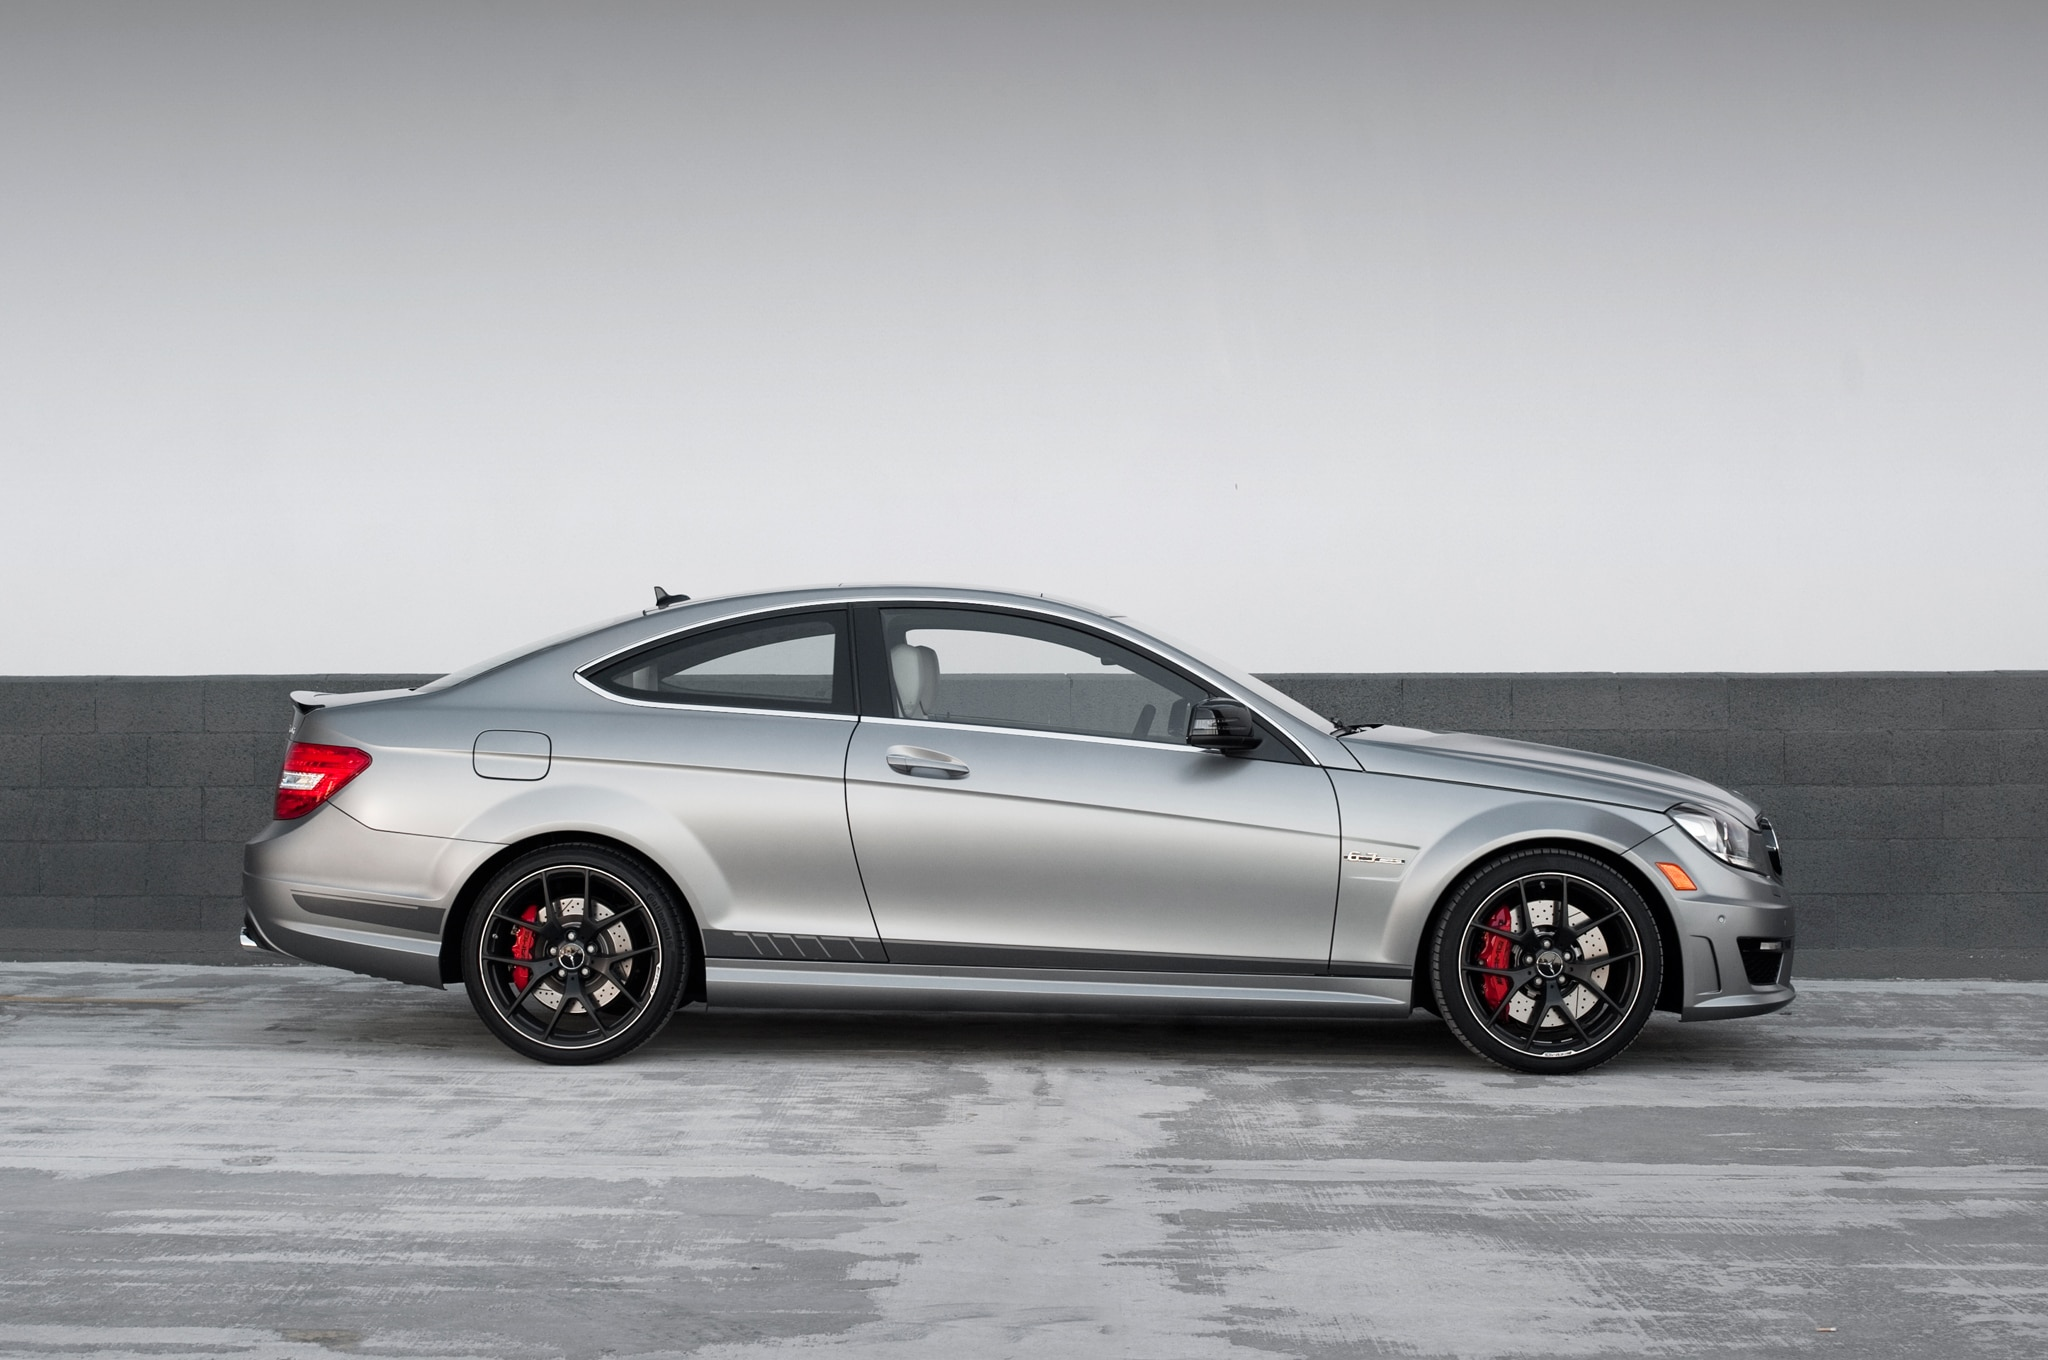 Audi rs5 mercedes benz c63 507 on head 2 head for Mercedes benz c63 amg 507 edition 2015